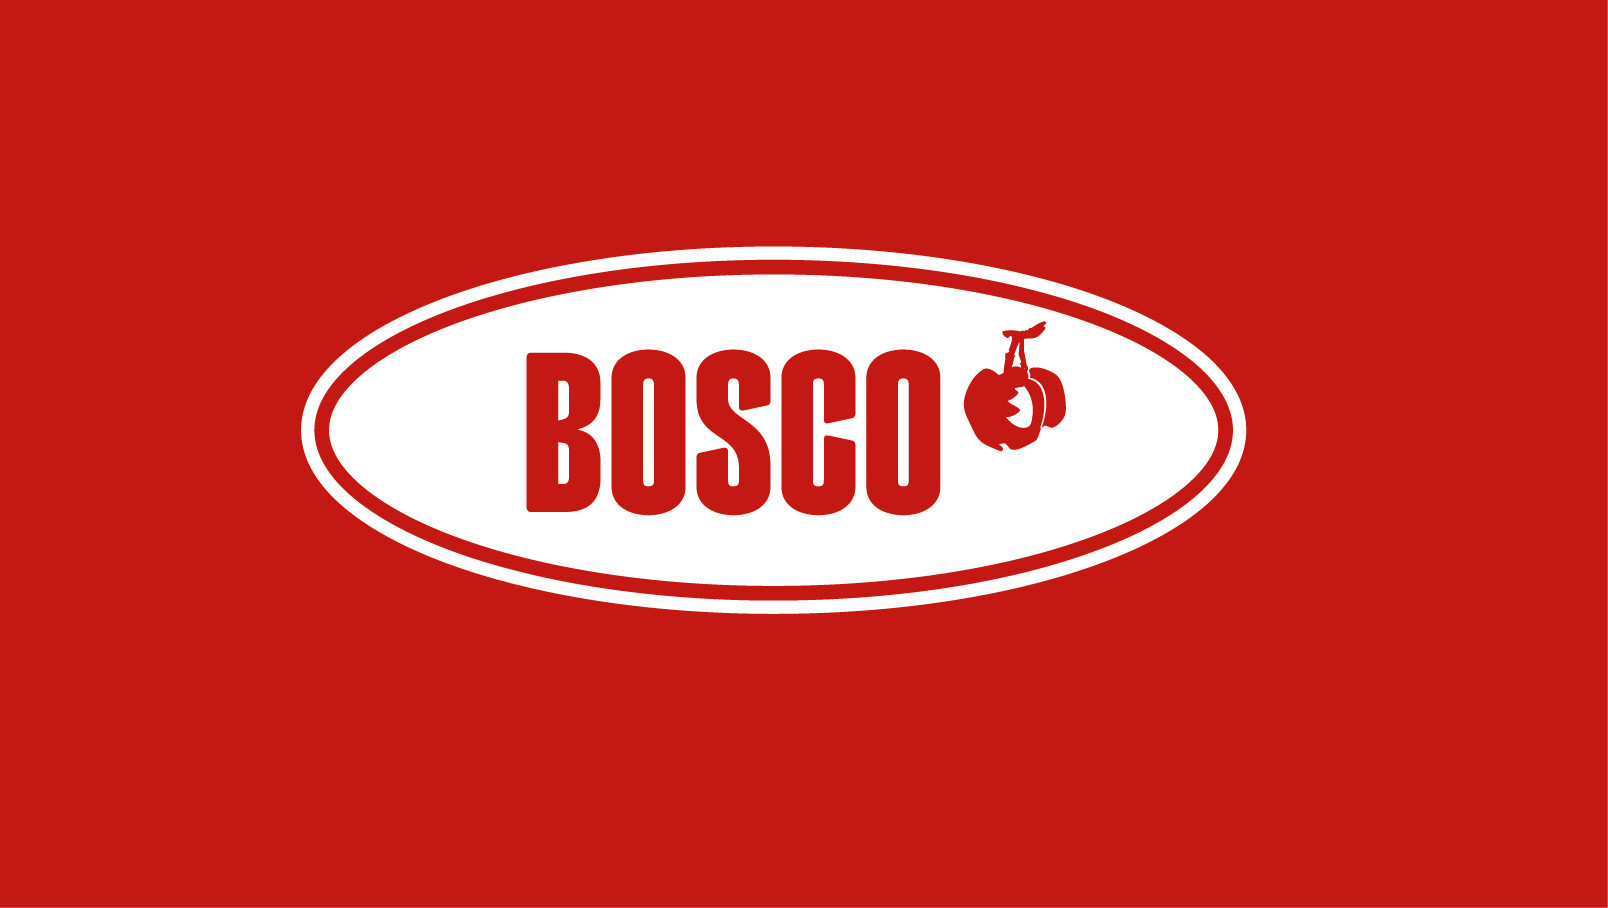 Bosco have reportedly asked for their kit not to be used at Pyeongchang 2018 ©Bosco